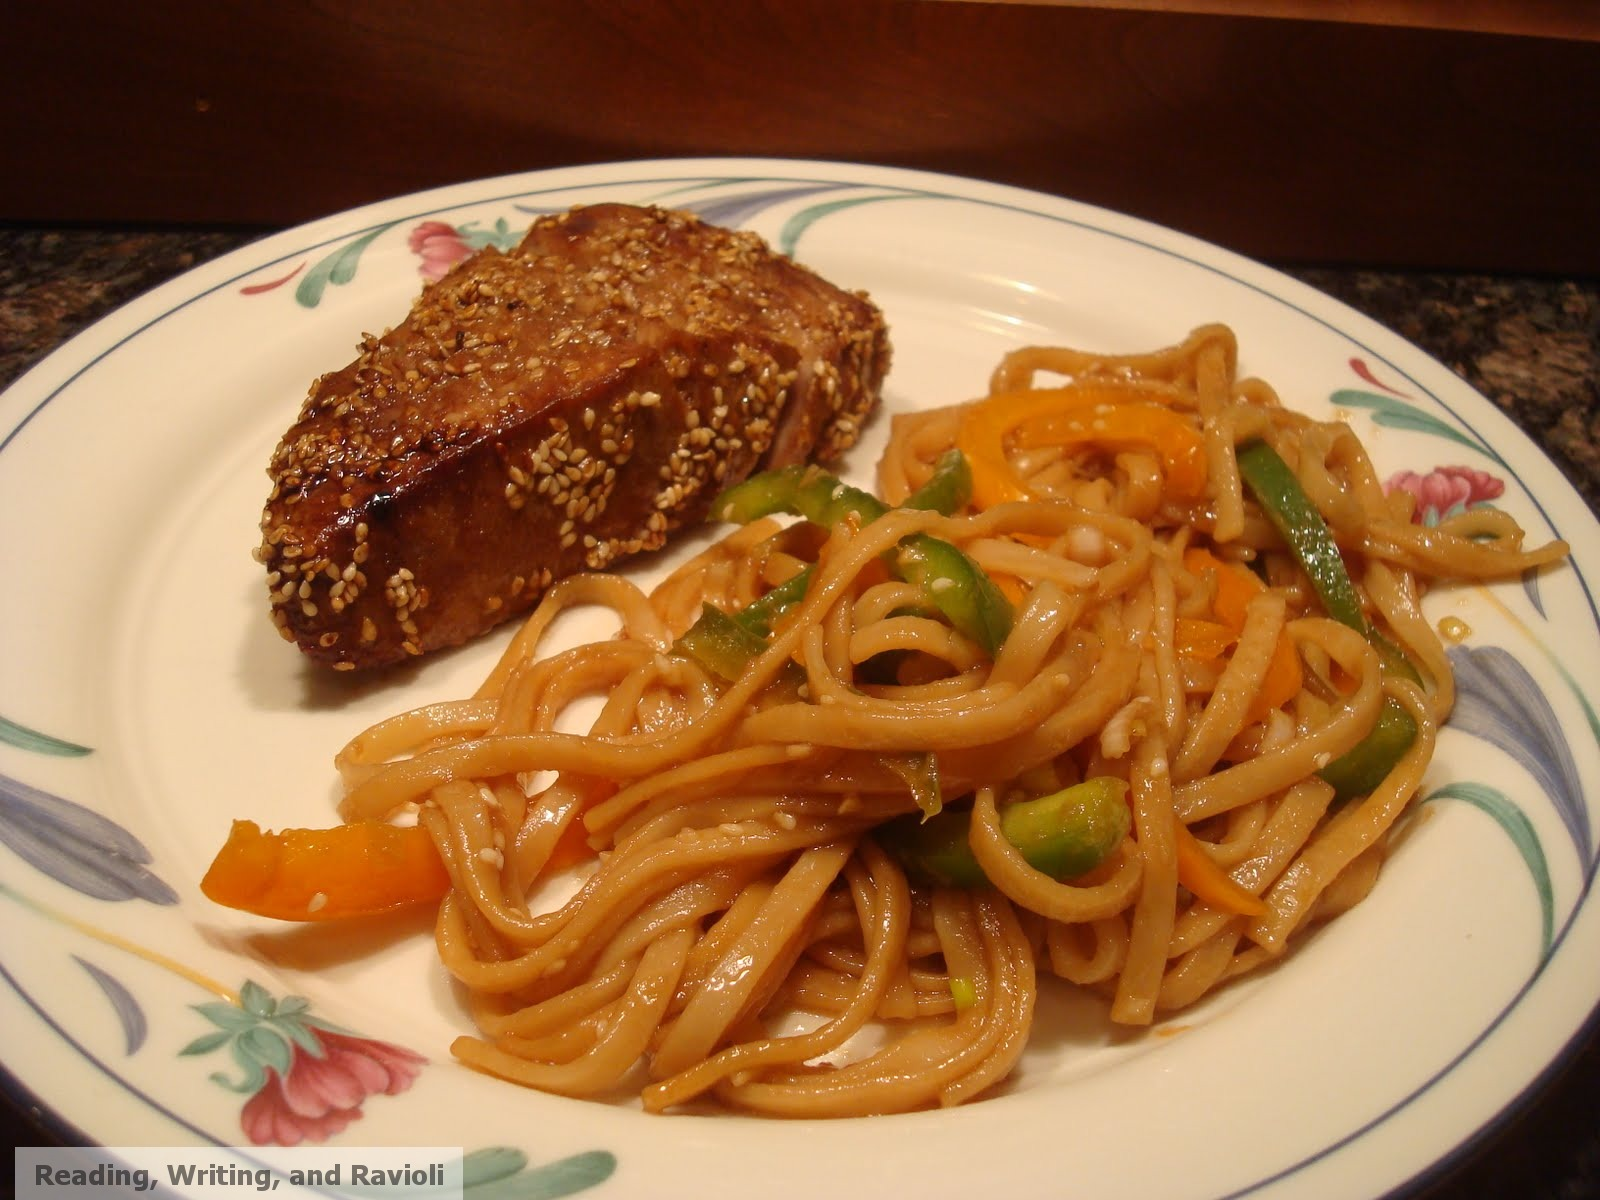 ... , Writing, and Ravioli: Recipe: Sesame Seared Tuna with Udon Noodles